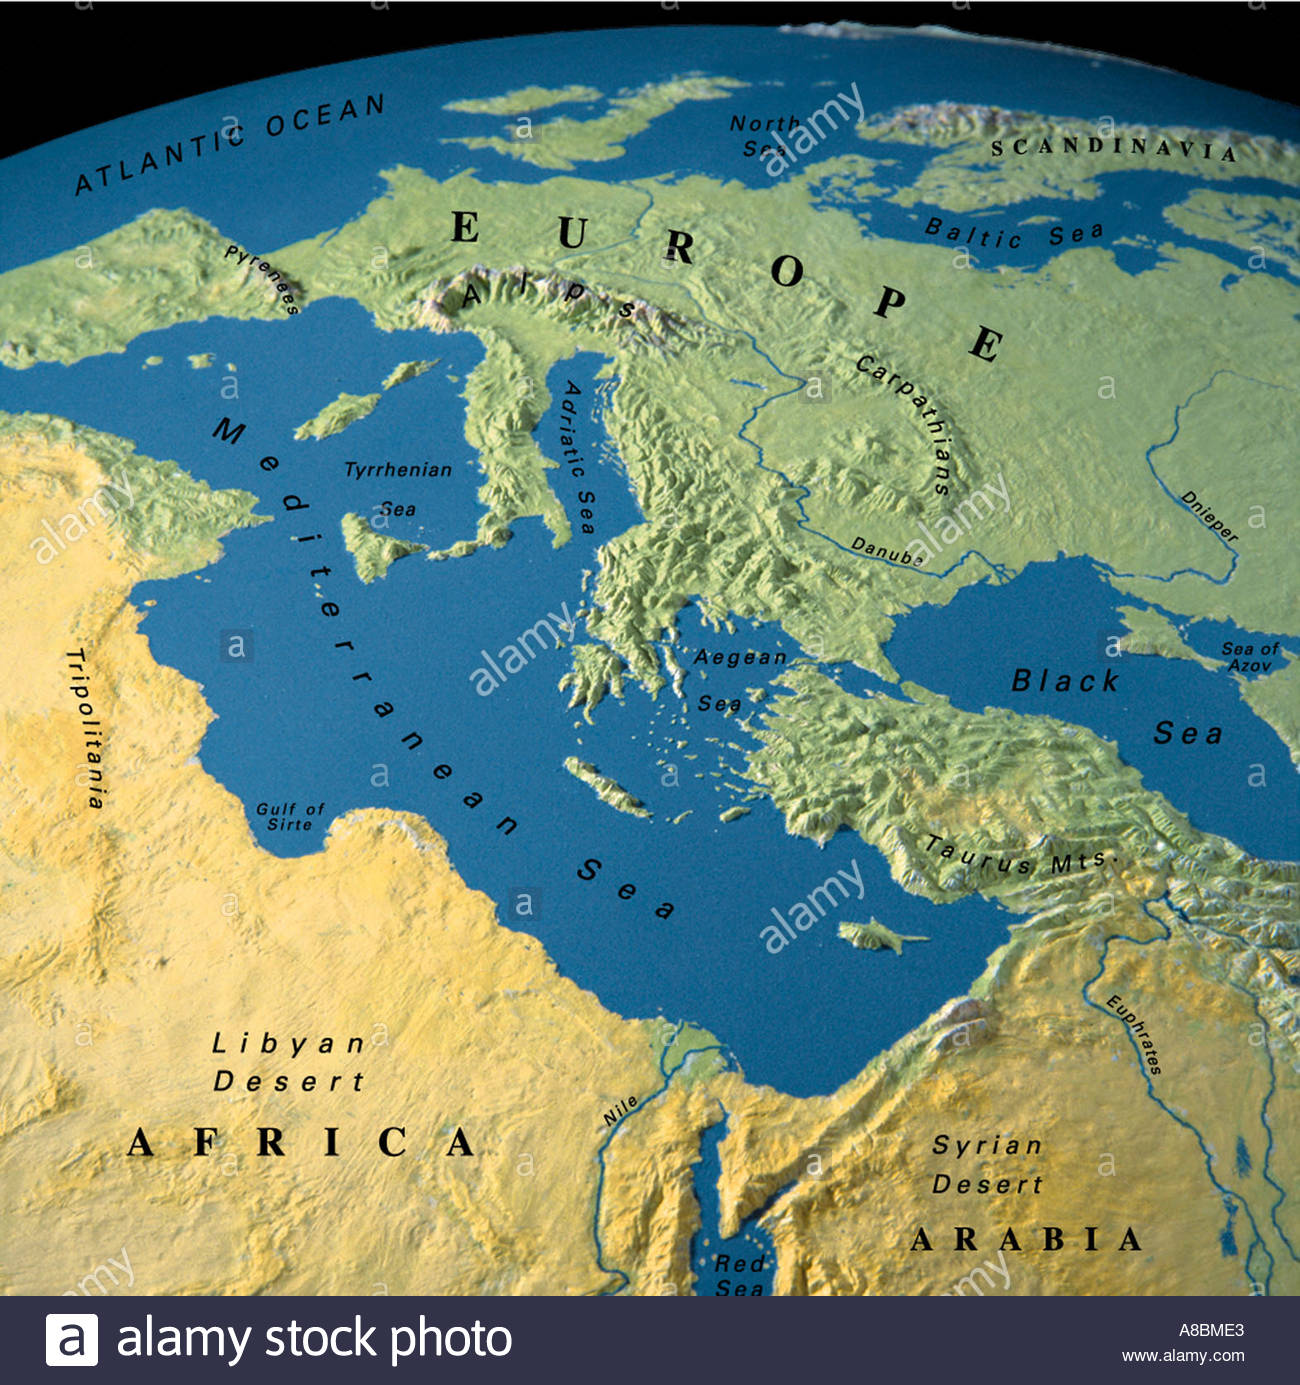 Globe Map Maps Europe Africa Middle East Stock Photo 3934434 Alamy